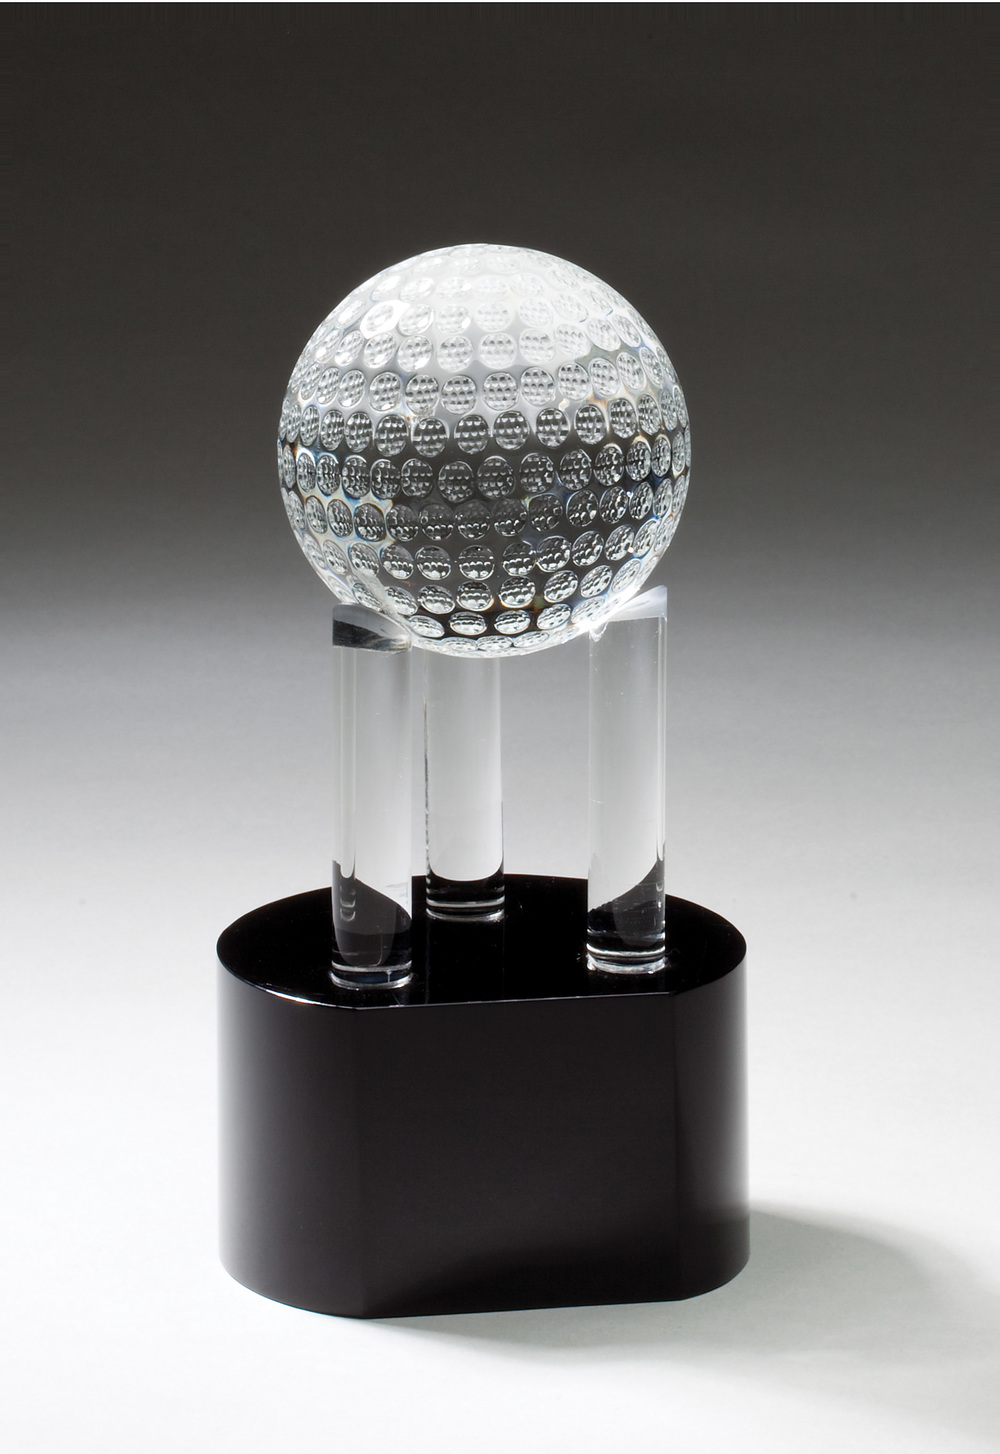 "Crystal Golf Ball on 3 Posts CRY337 - 7.75"" tall x 4"" wide Price = $108"